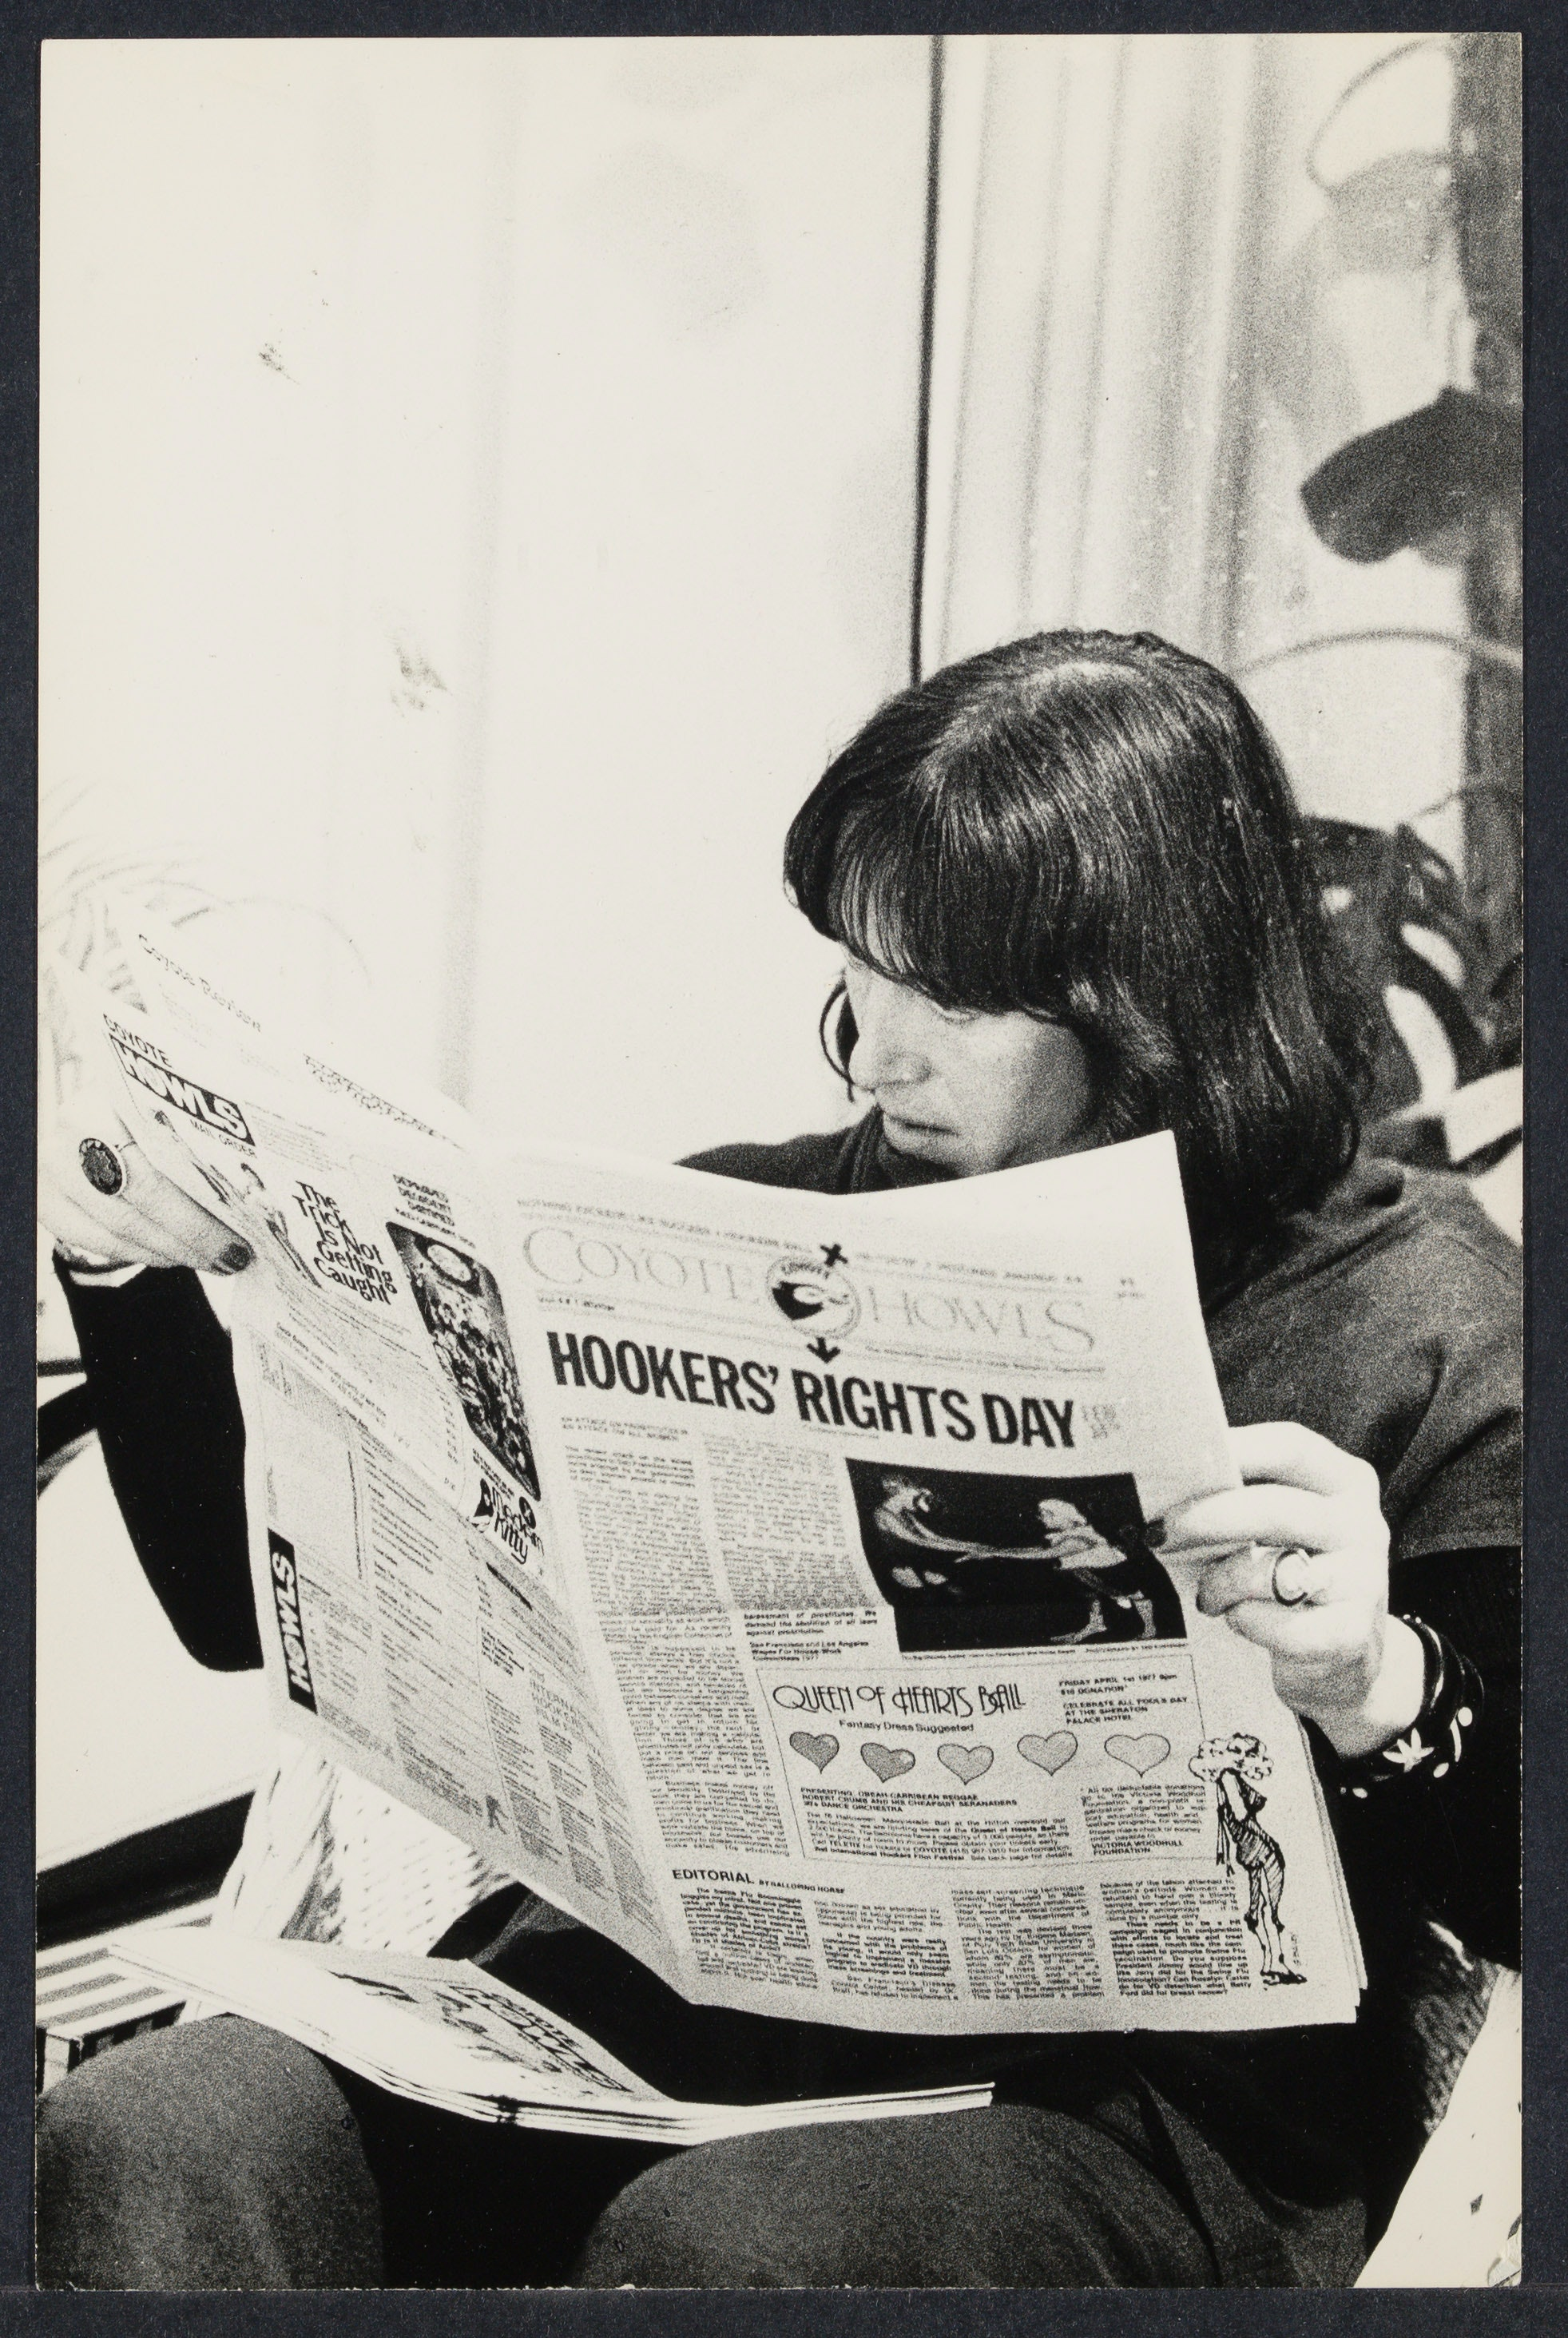 Margo St. James reading a newspaper at the Battered Women's conference